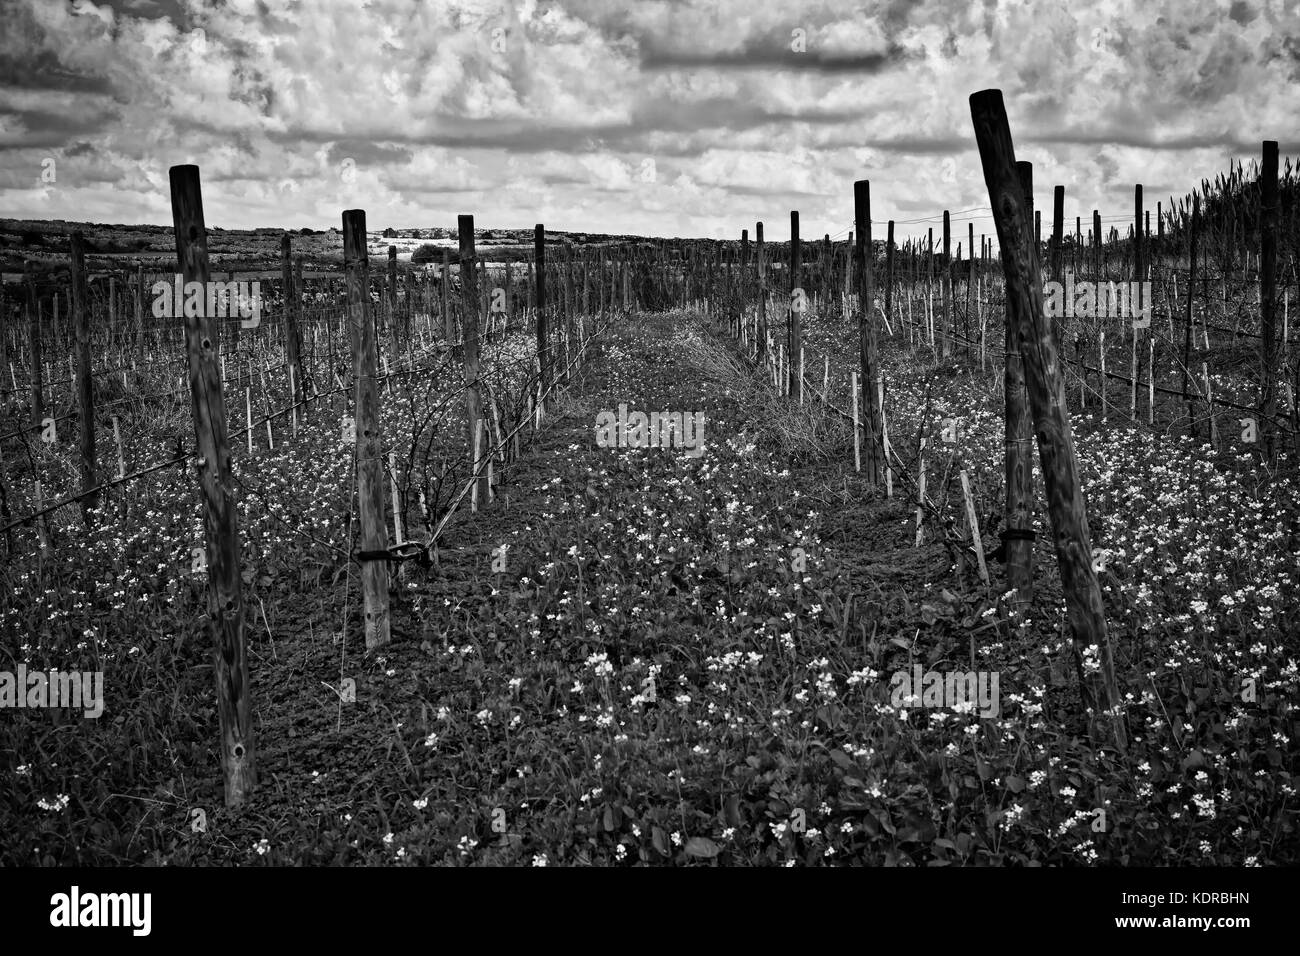 Vineyard supporting poles in a field in Bahrija in monochrome - Stock Image